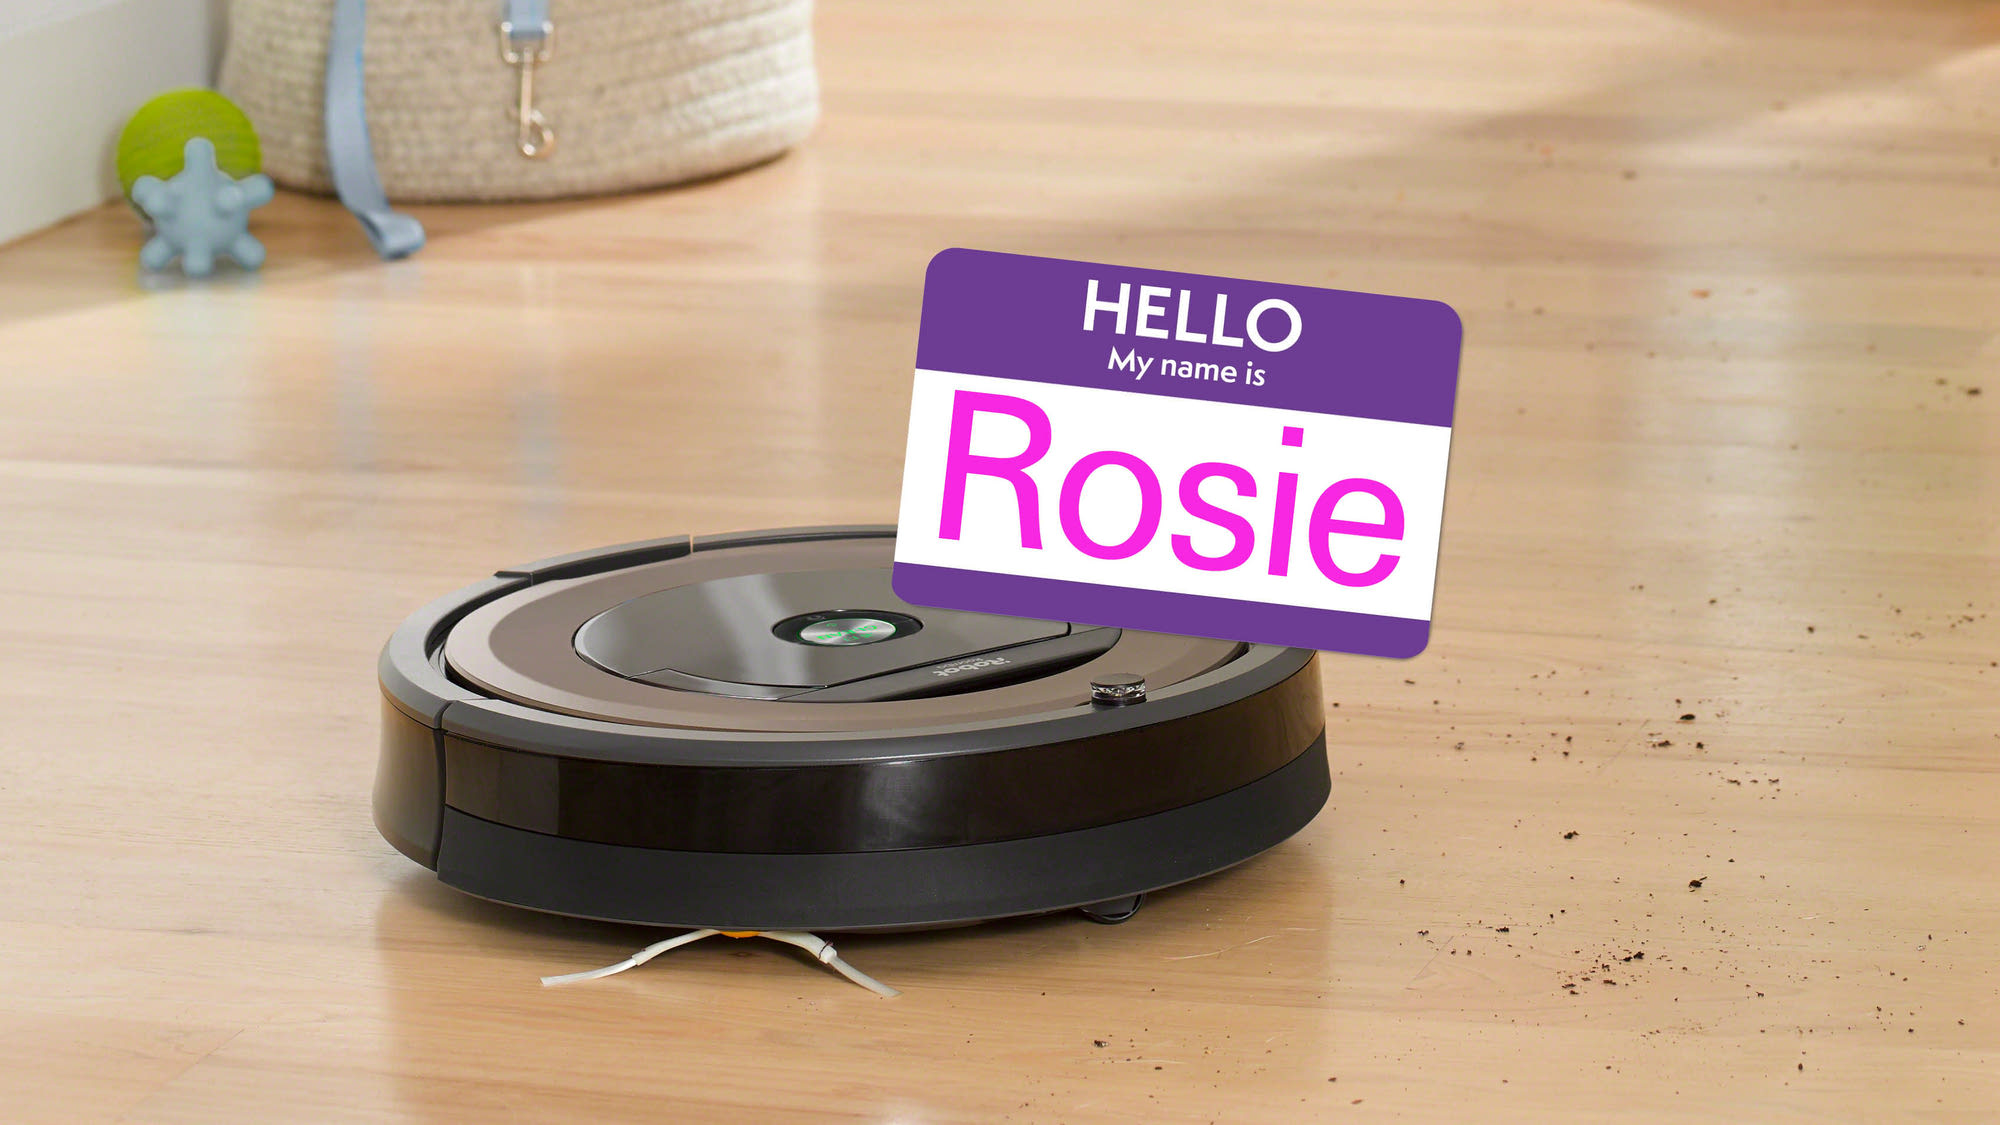 Roomba app notifications are unhelpful and miss the point